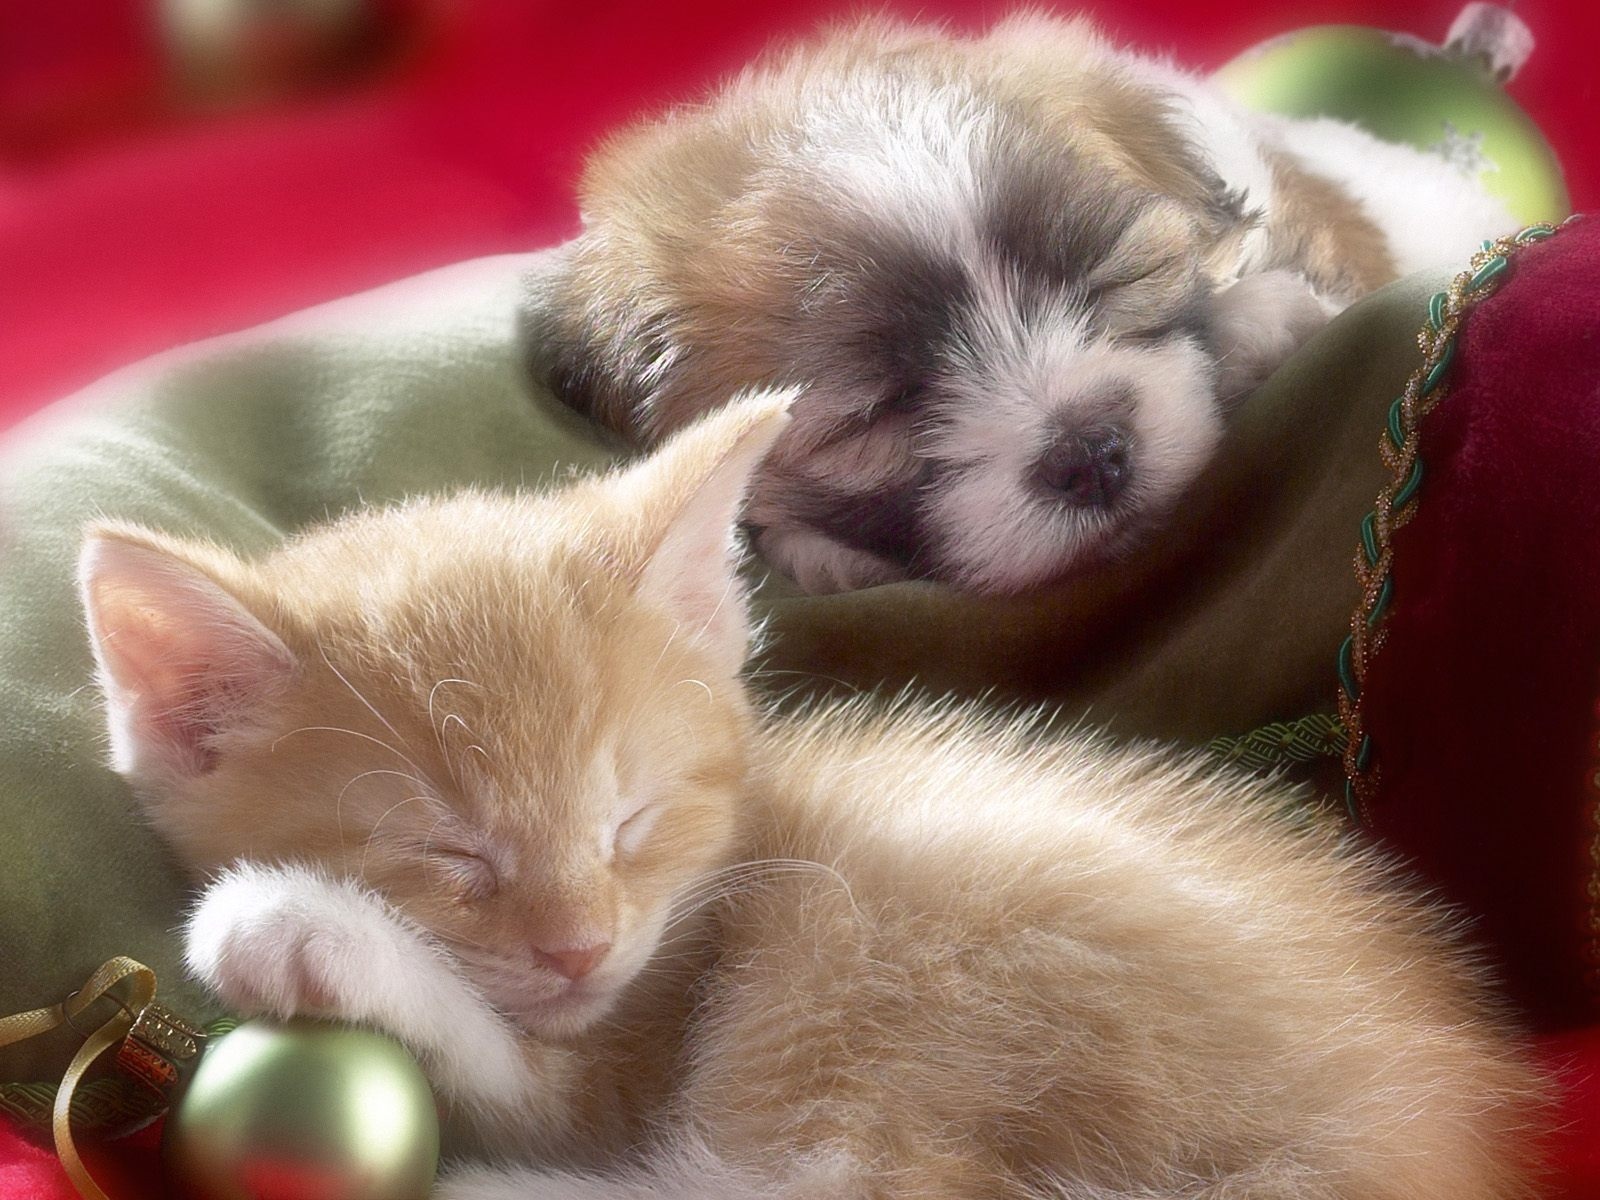 Free download Kitten and Puppy Kittens